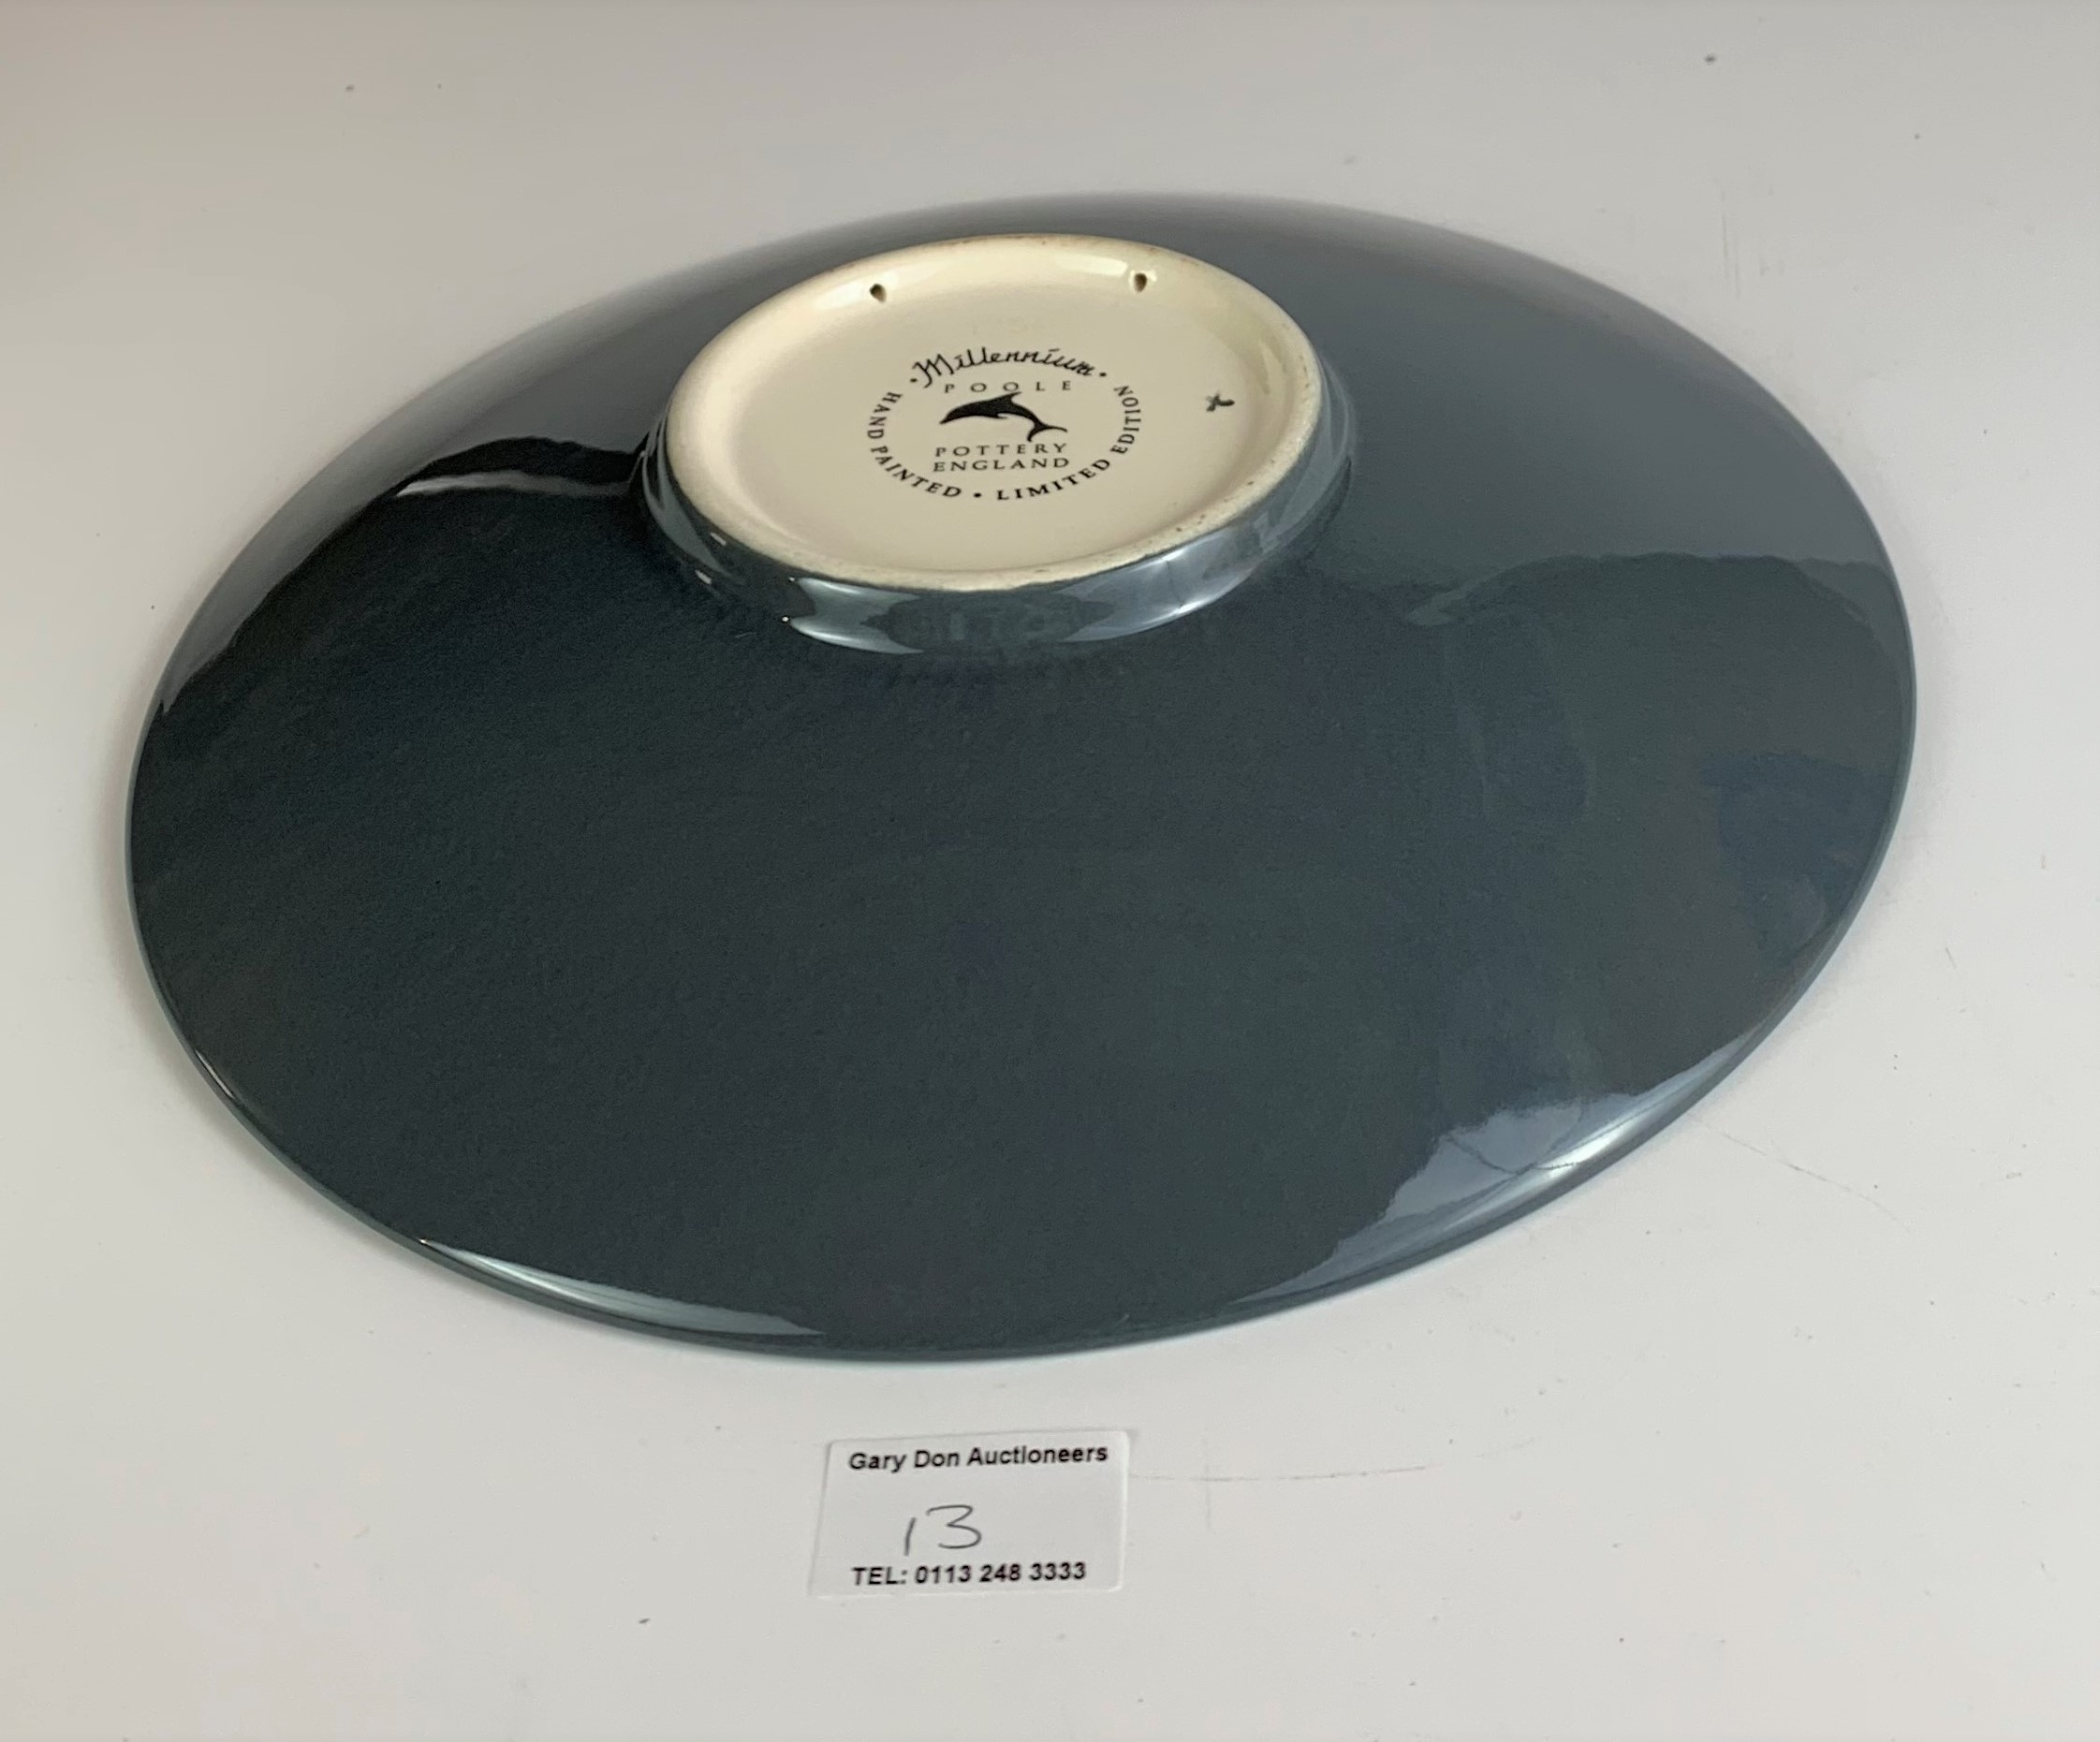 """Limited edition Poole plate, Millennium no. 211/500 with certificate, 10.5"""" diameter, no damage - Image 6 of 6"""